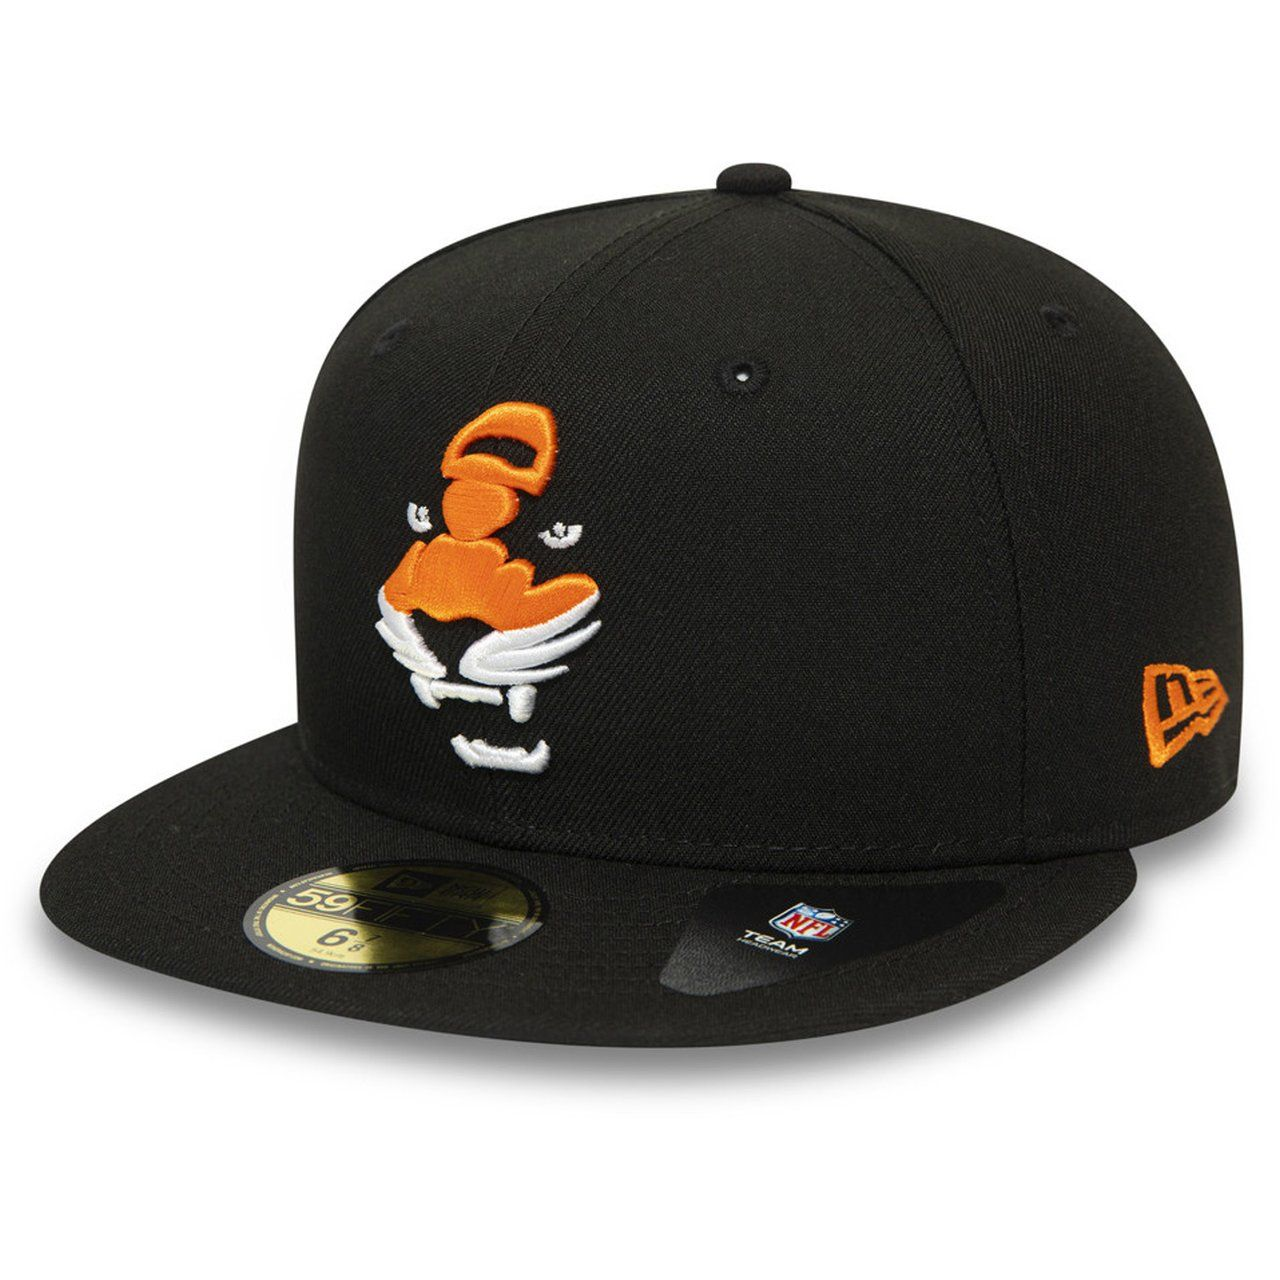 amfoo - New Era 59Fifty Fitted Cap - ELEMENTS Cincinnati Bengals